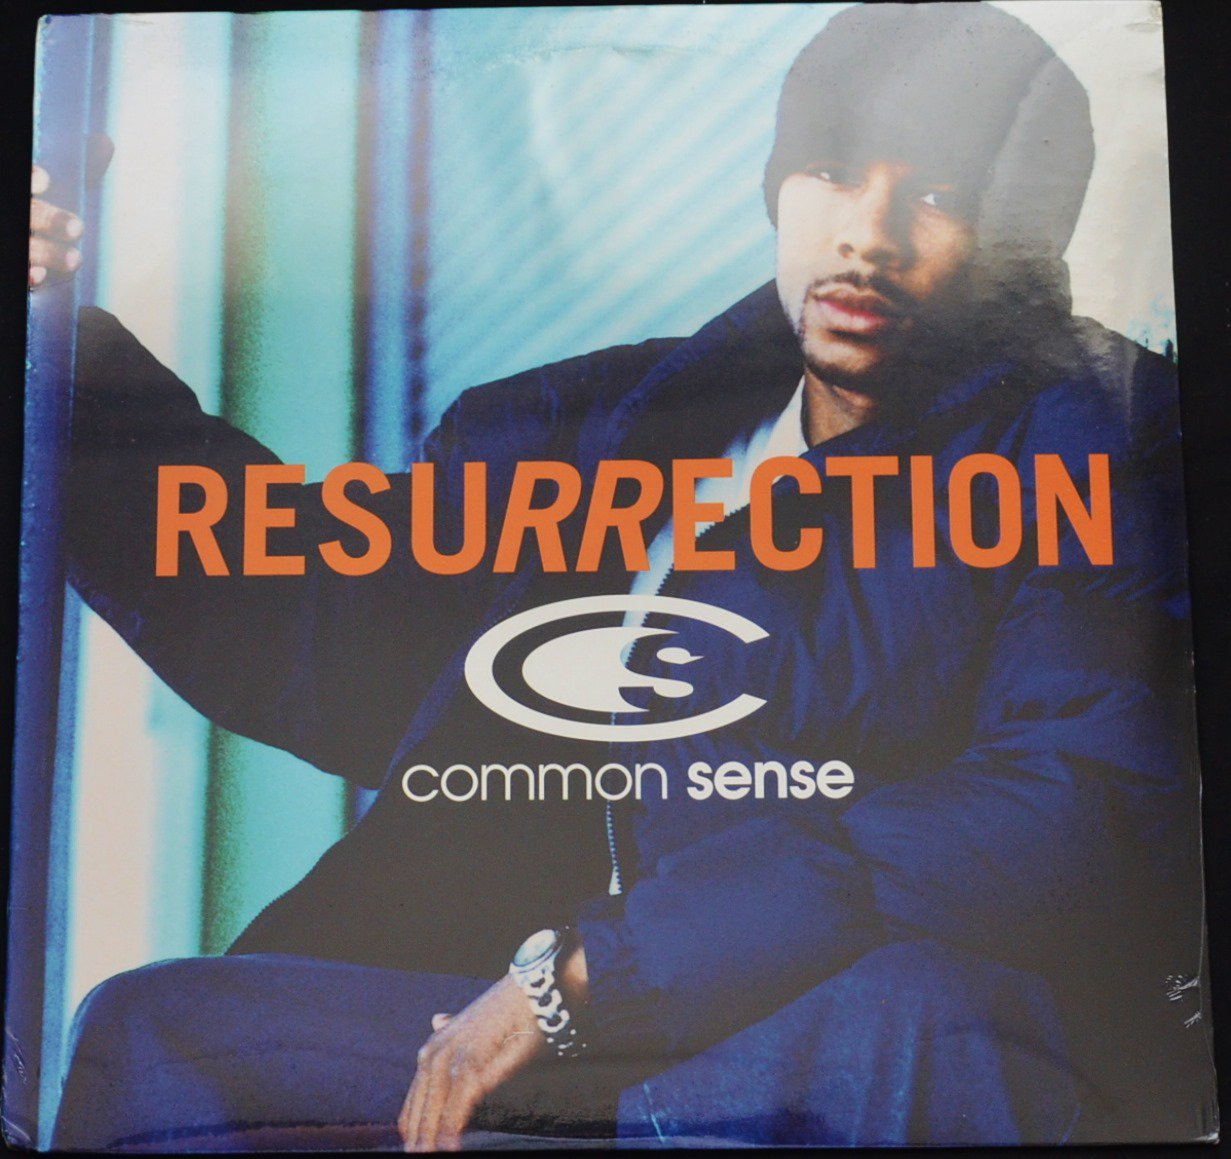 COMMON SENSE / RESURRECTION / RESURRECTION (EXTRA P. REMIX) (12